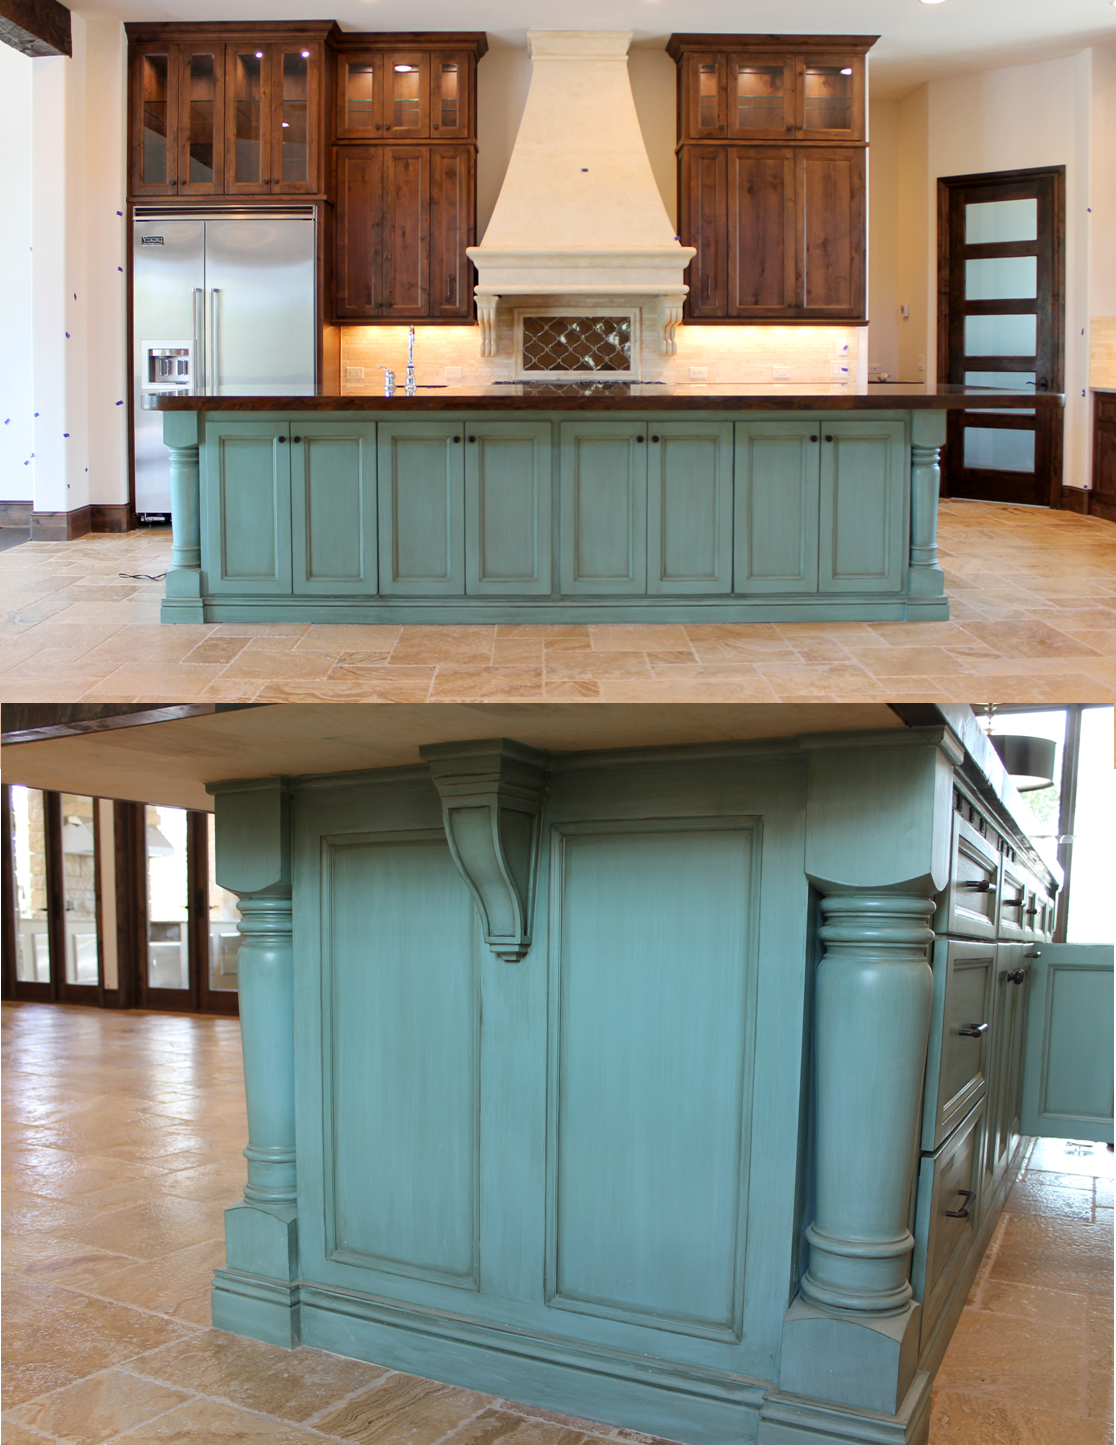 How To: Paint Cabinets (Secrets From A Professional) (With